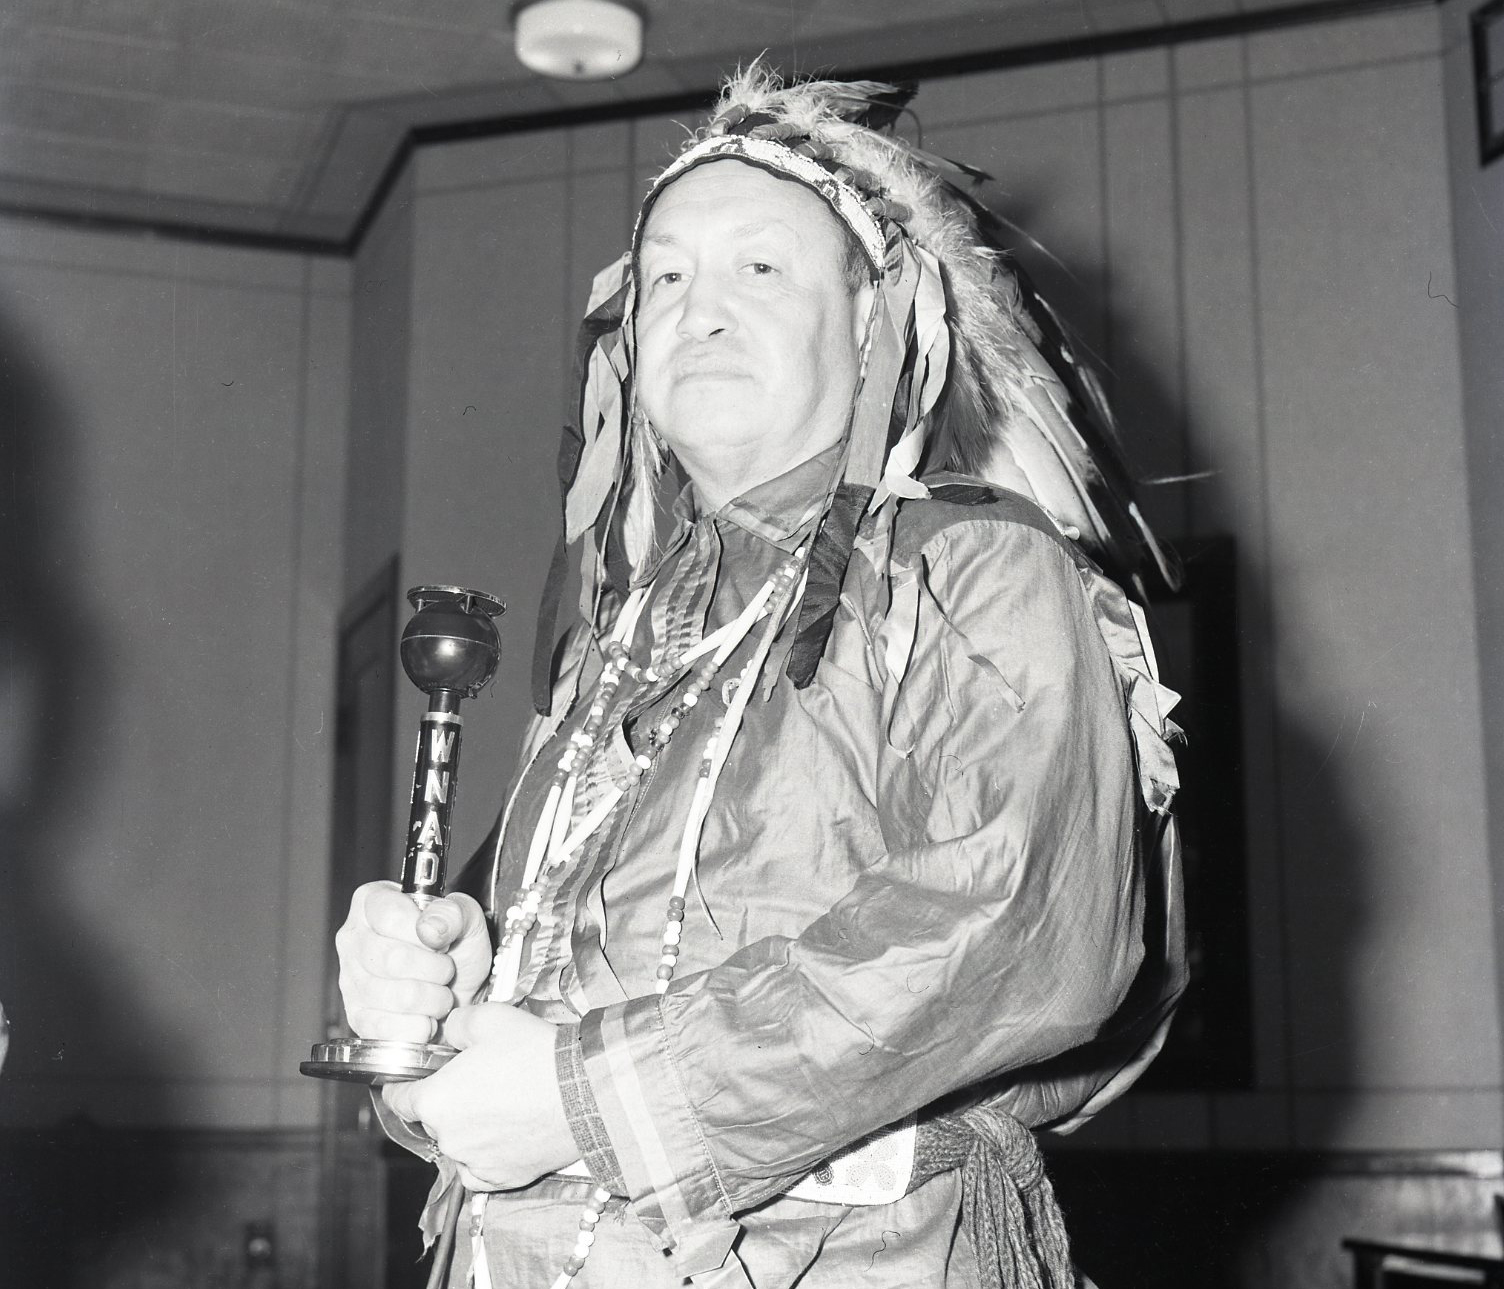 photo of Chief Don Whistler4)Don Whistler, Chief of the Sac and Fox tribe, and creator of Indians for Indians, in the WNAD studio. OU Photographic Service #16339, University Archives, OU Libraries Western History Collections.